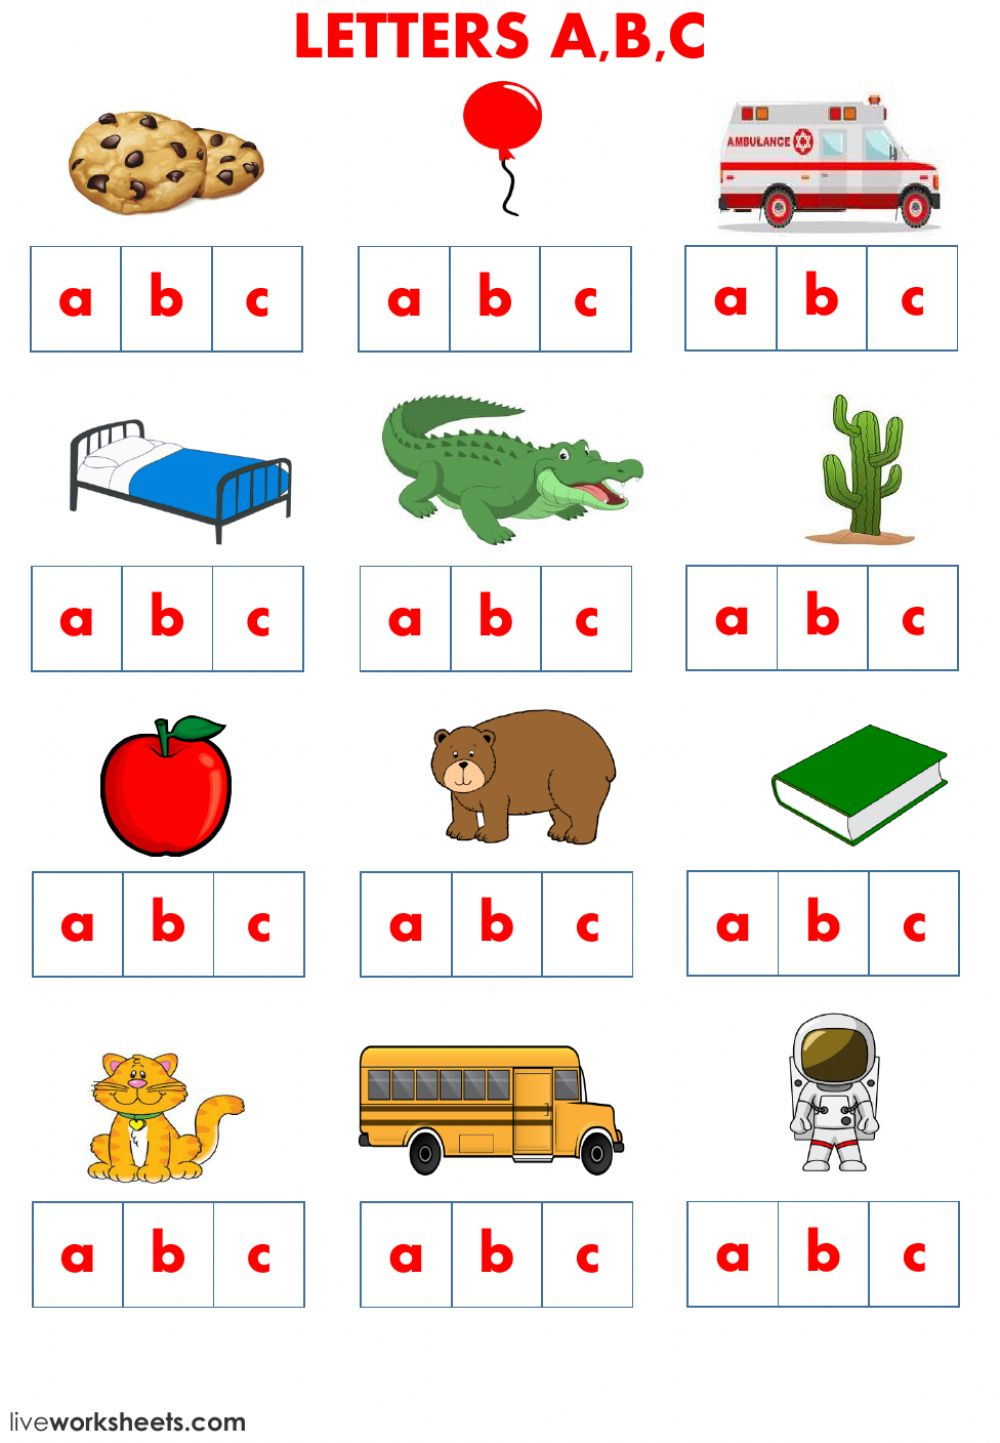 - Letters A B C School Supplies And Family - Interactive Worksheet